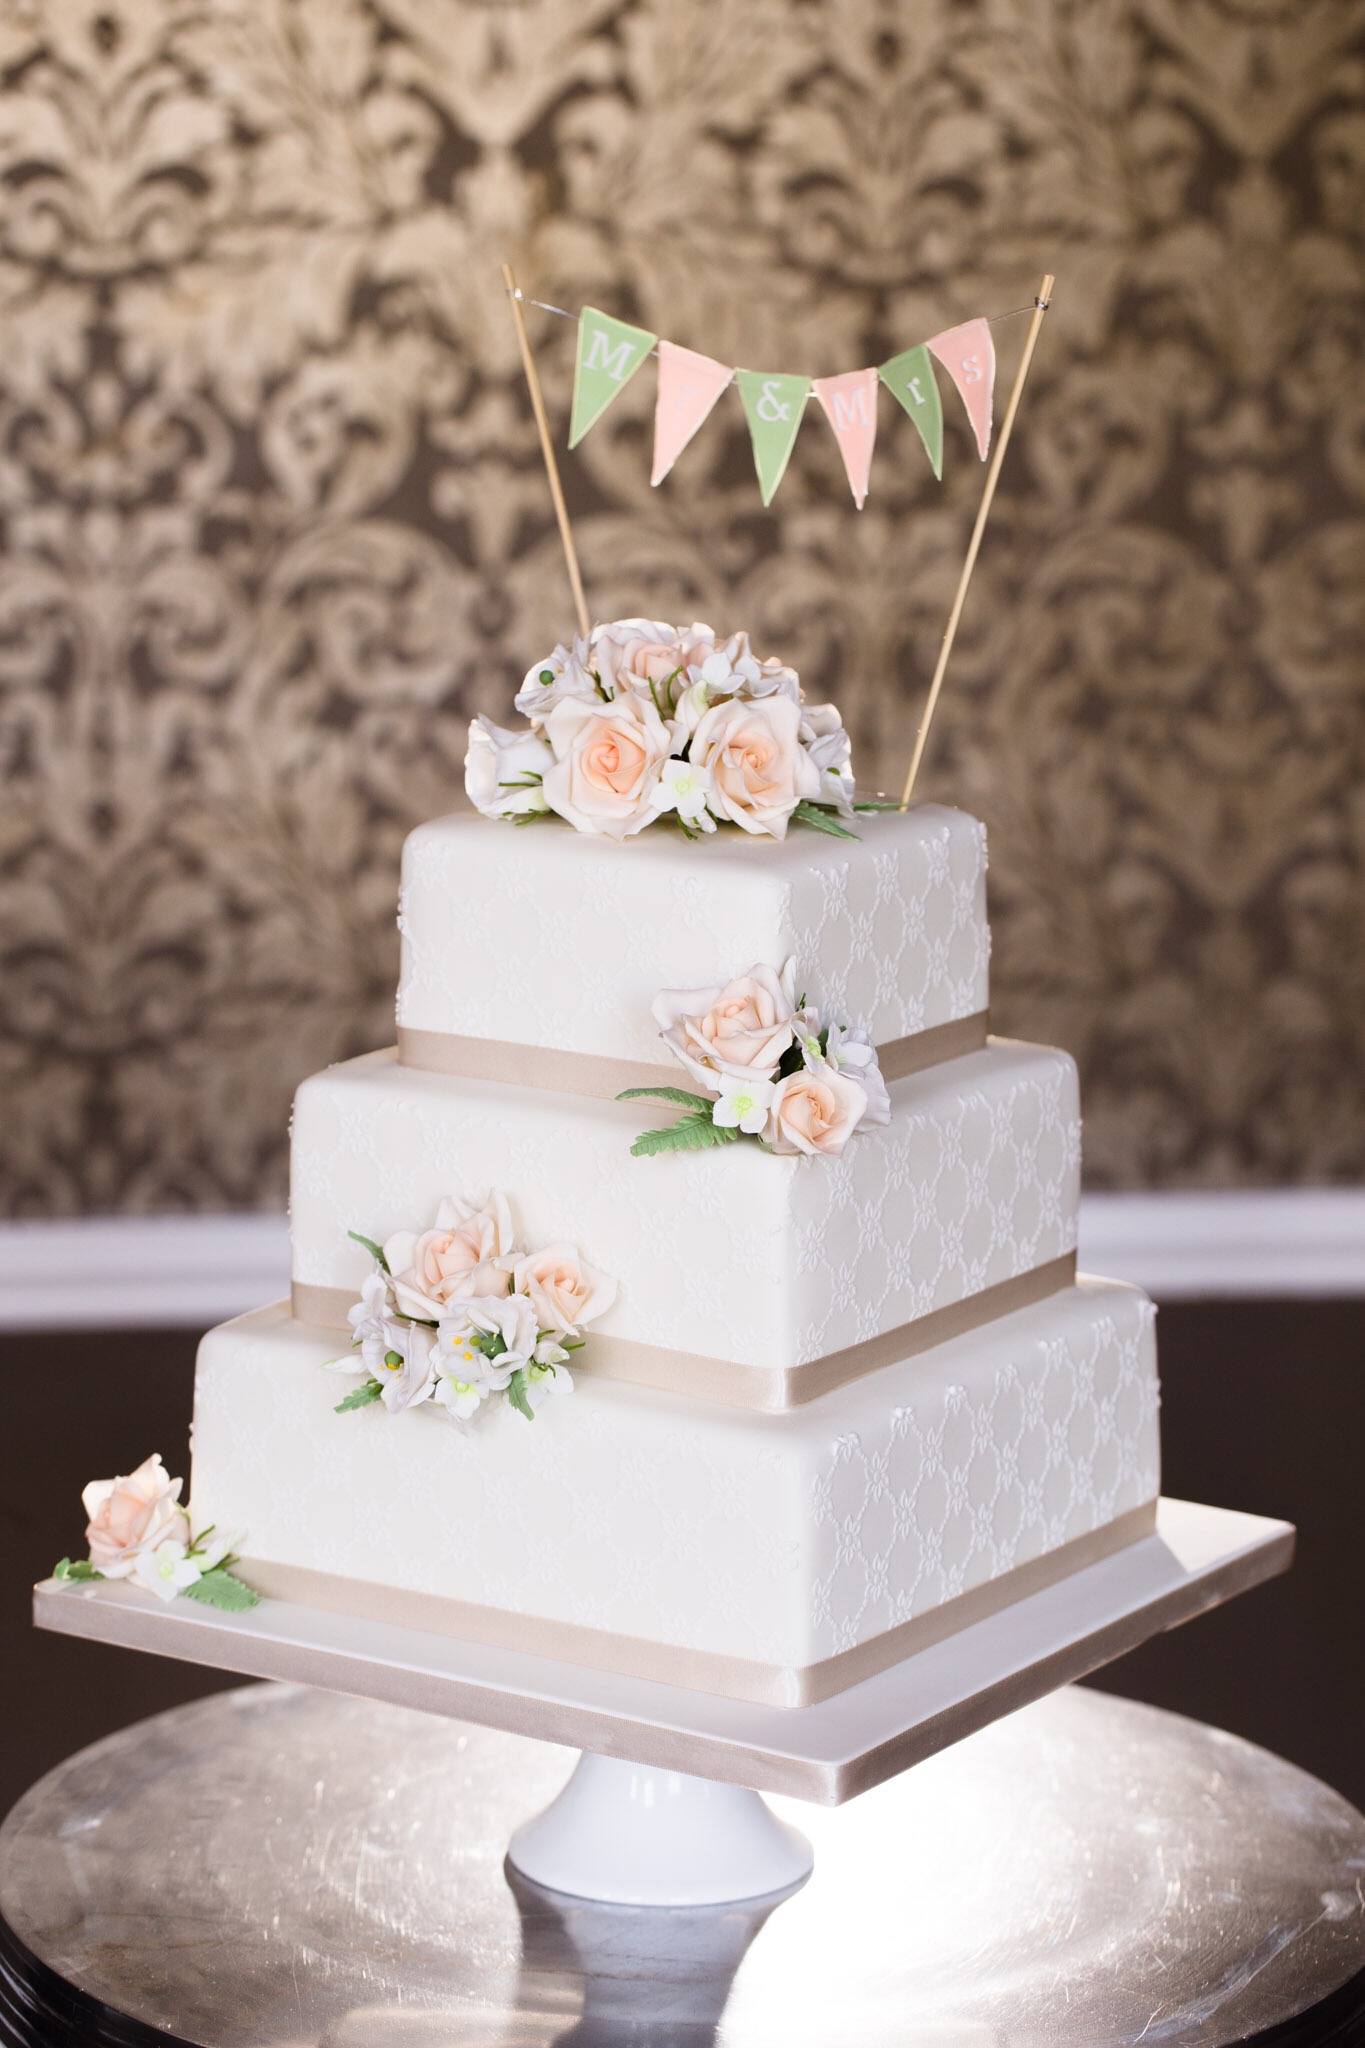 Marianne and Jack - Nonsuch Mansion - Cake